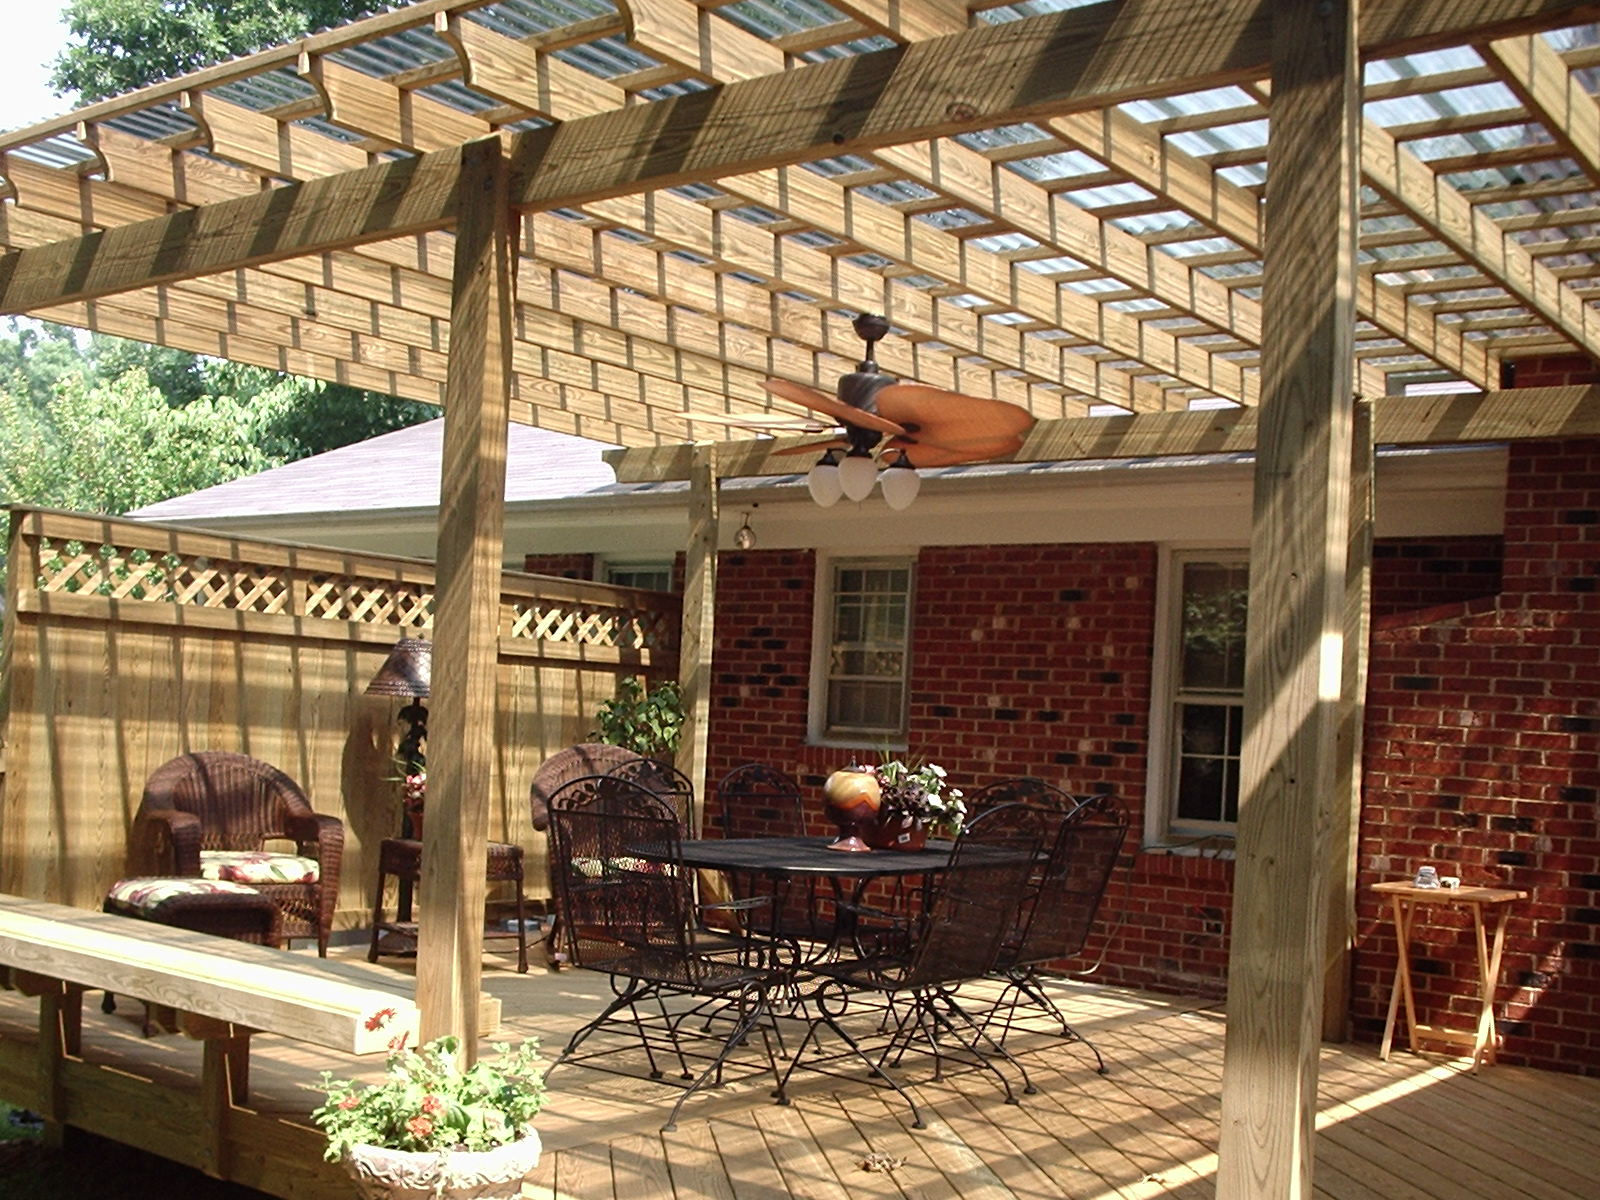 Backyard Wooden Shade Structures The Latest Home Decor Ideas pertaining to Backyard Structure Ideas